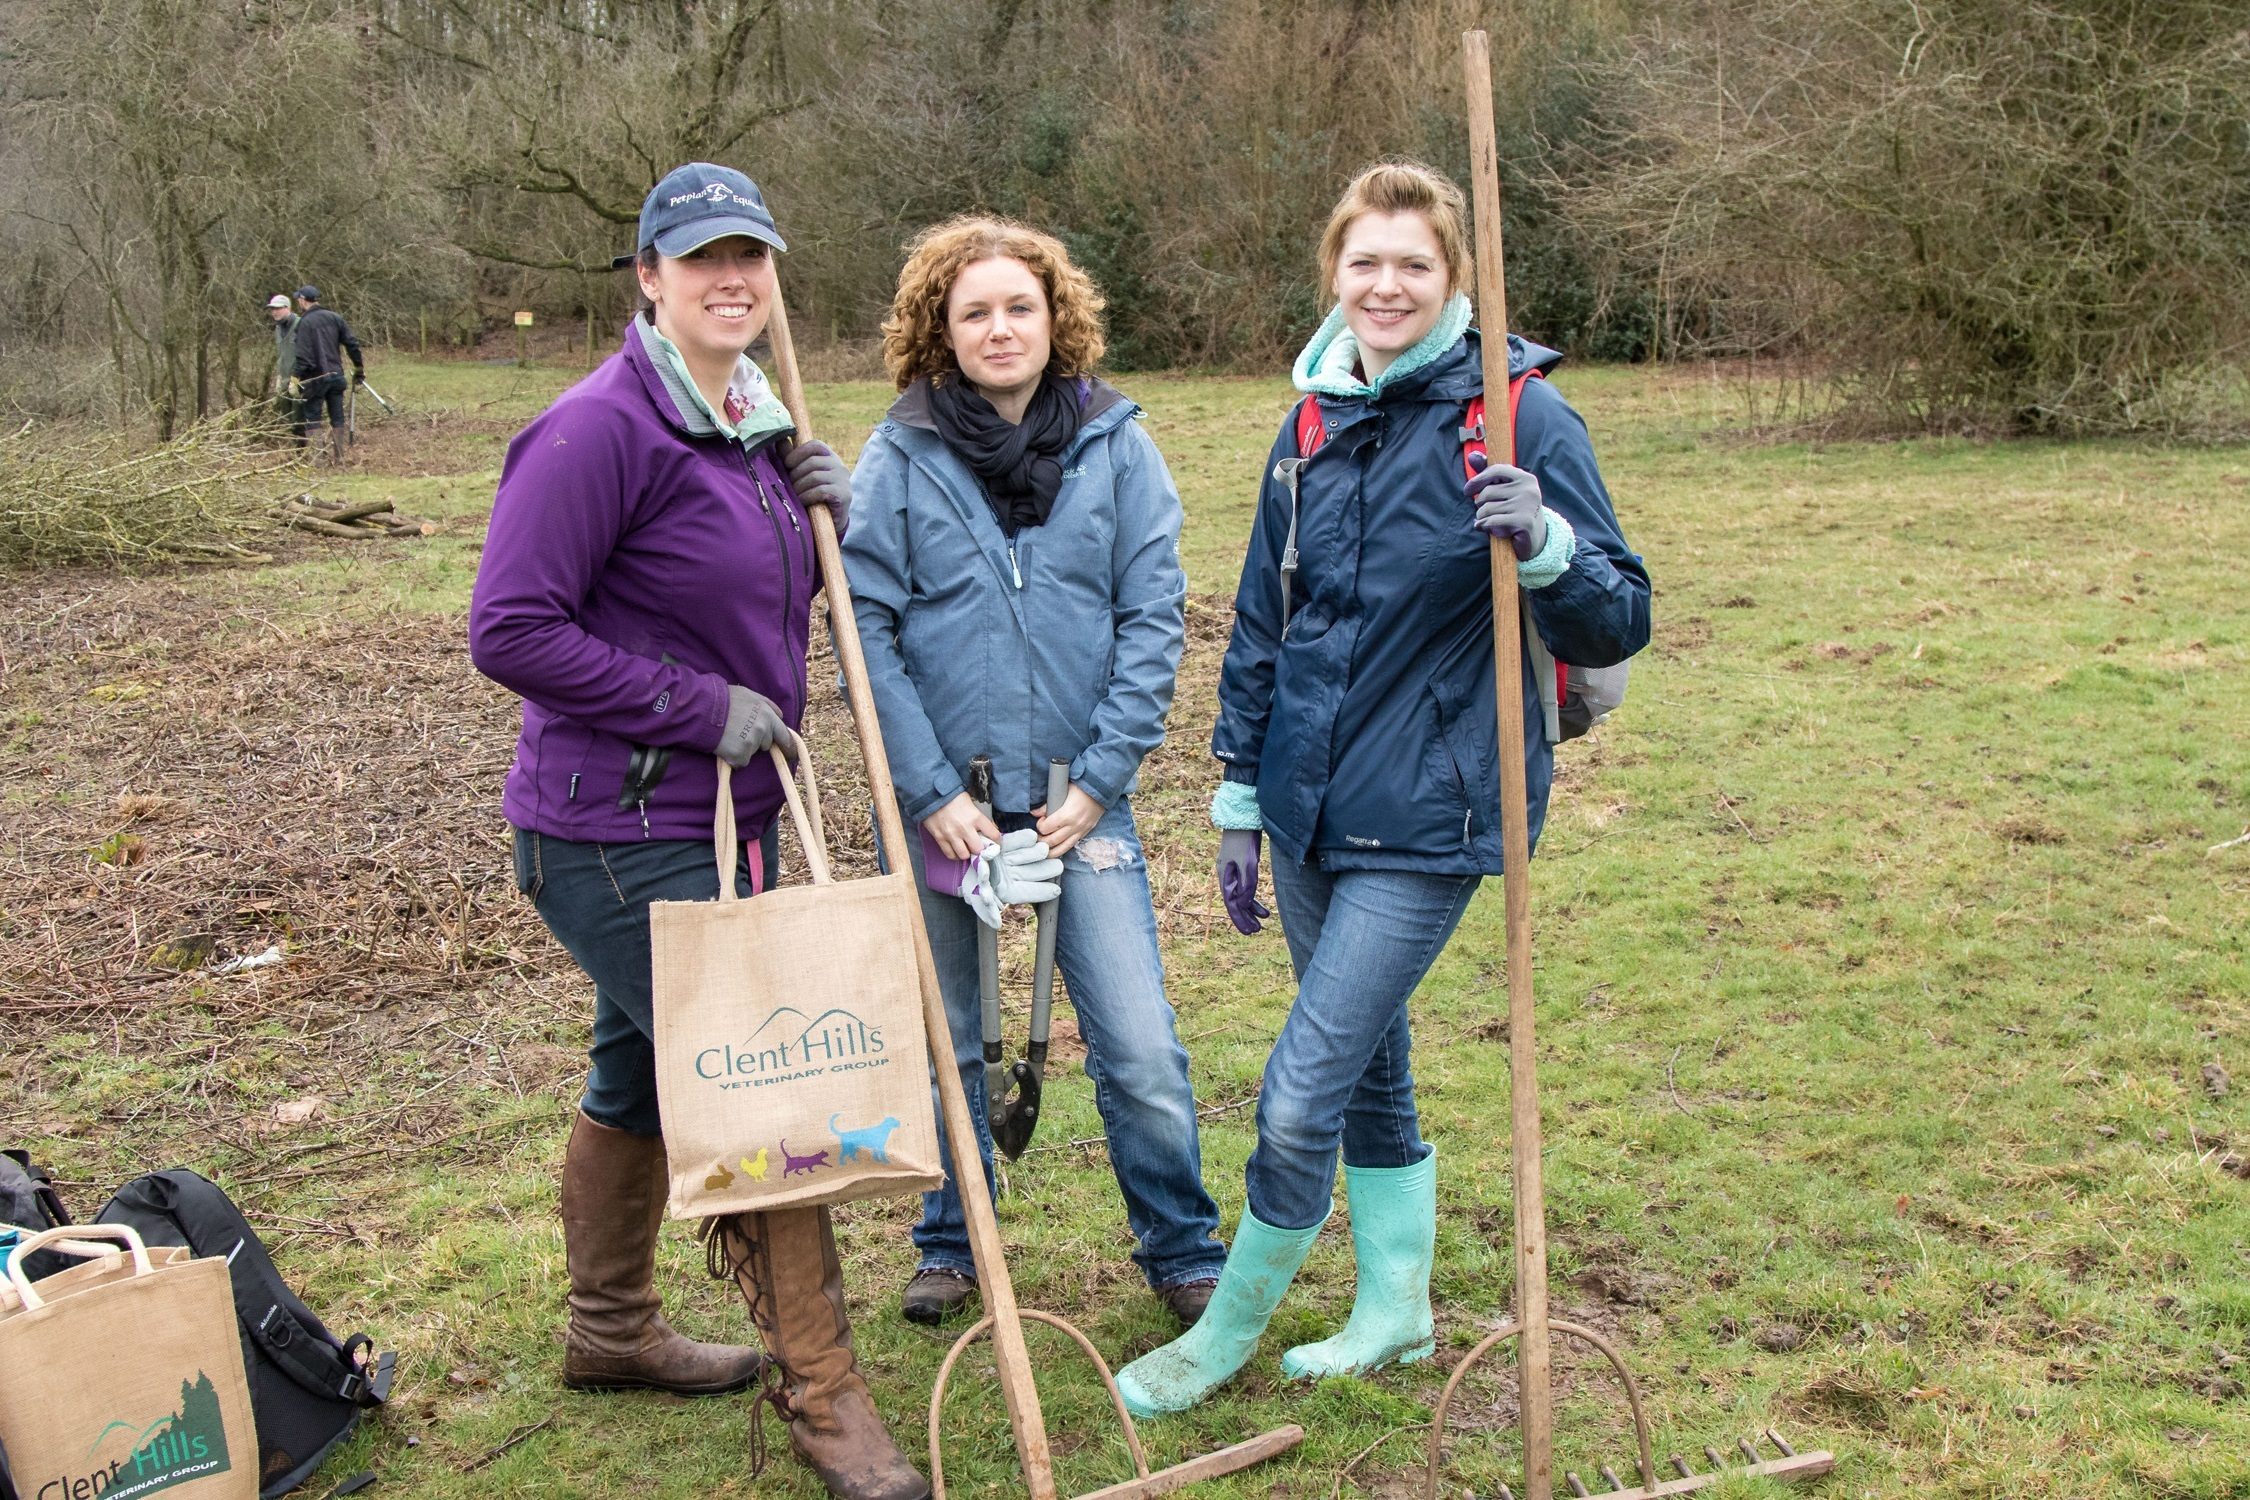 Rebekka Fiorani, Helen Beesley and Amy Holloway, of Clent Hills Vets